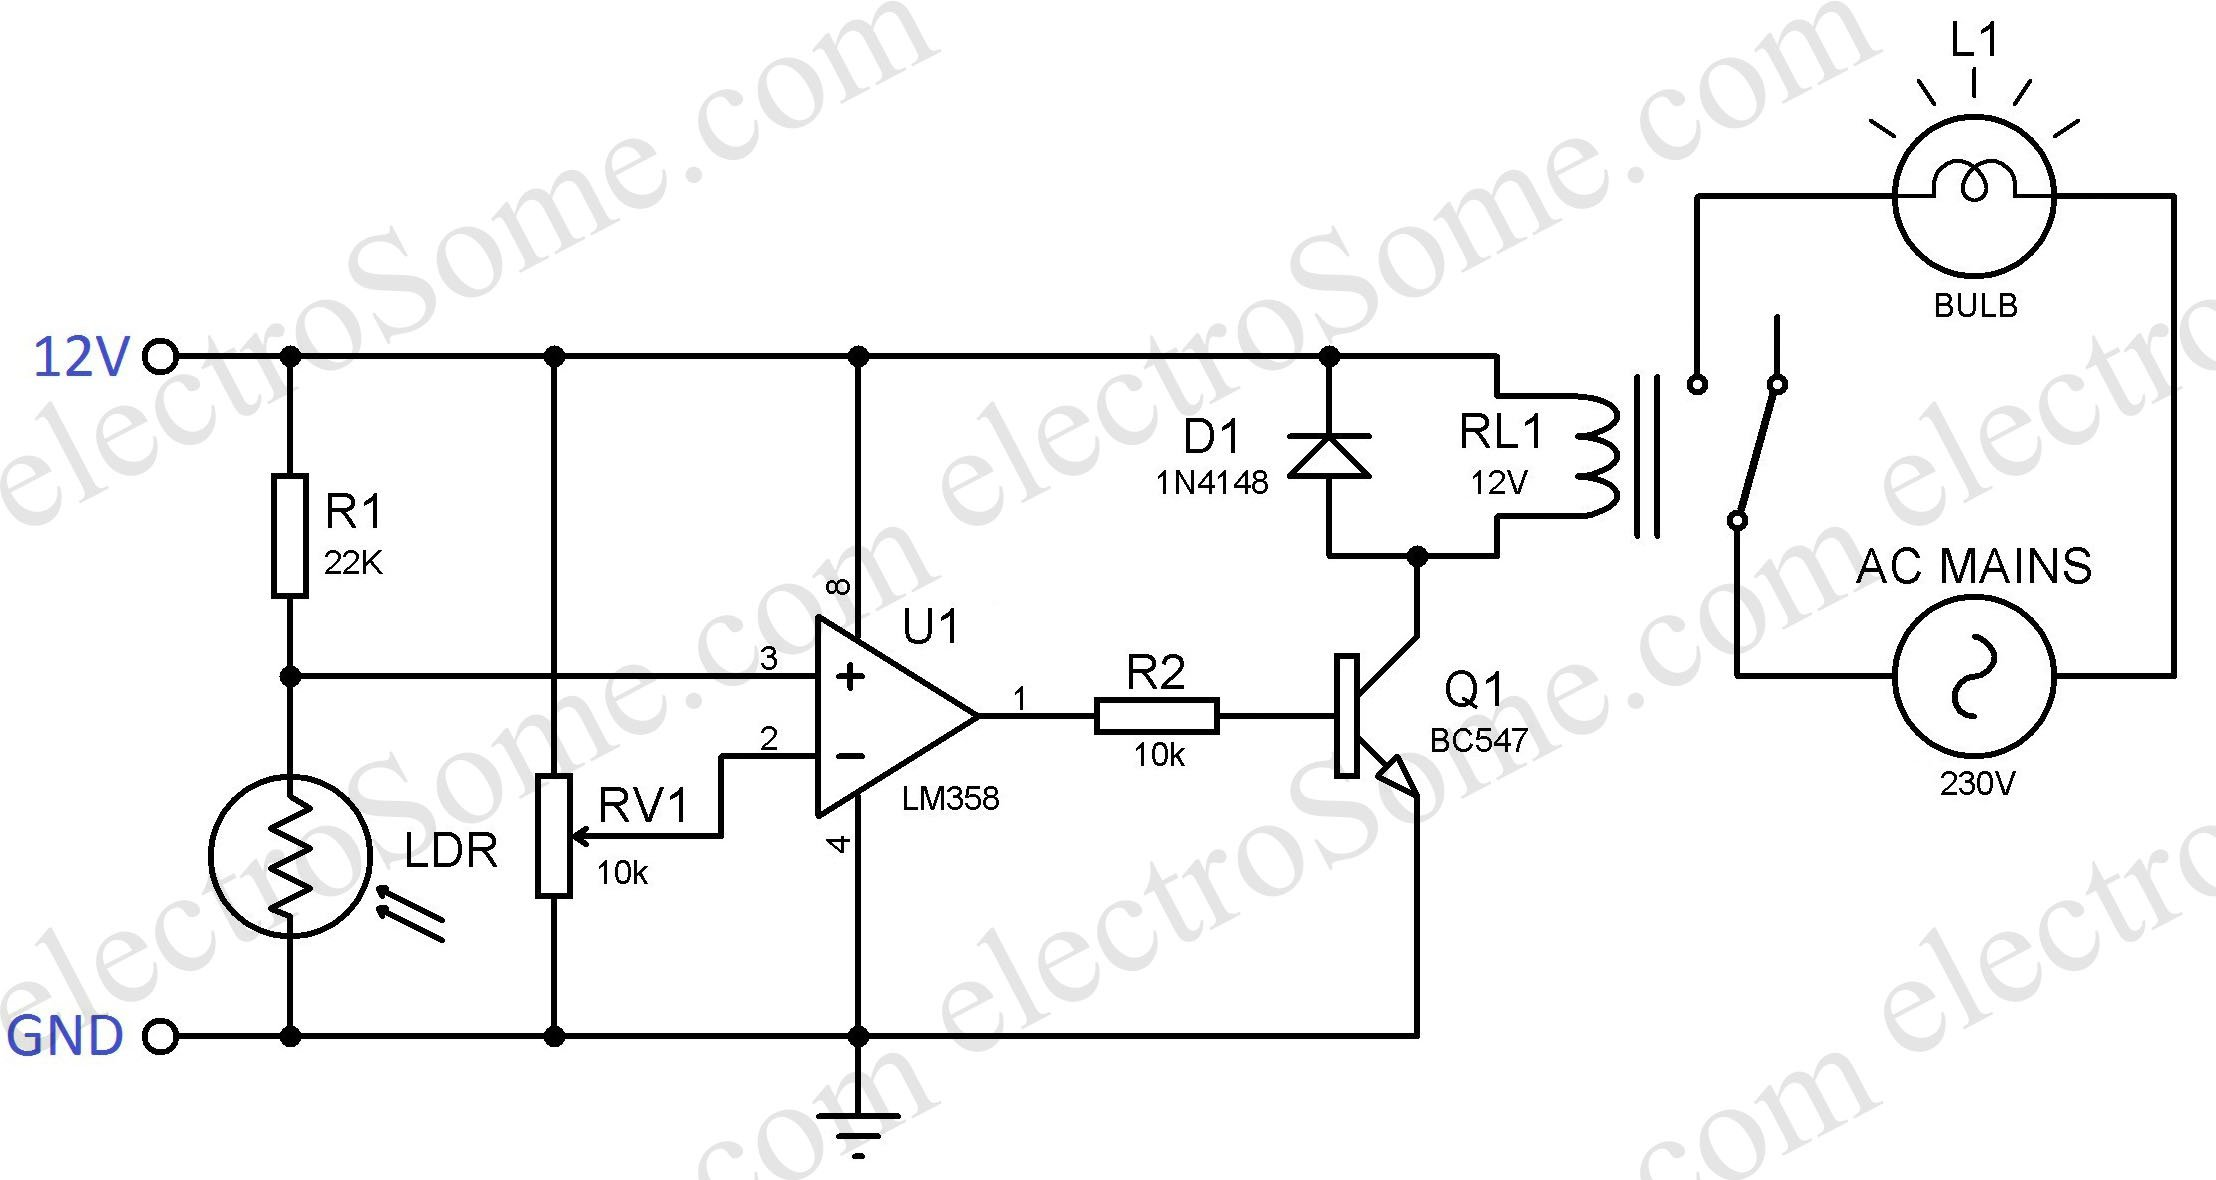 automatic night lamp using ldr rh electrosome com Air Conditioner Wiring Diagrams AC Plug Wiring Diagram